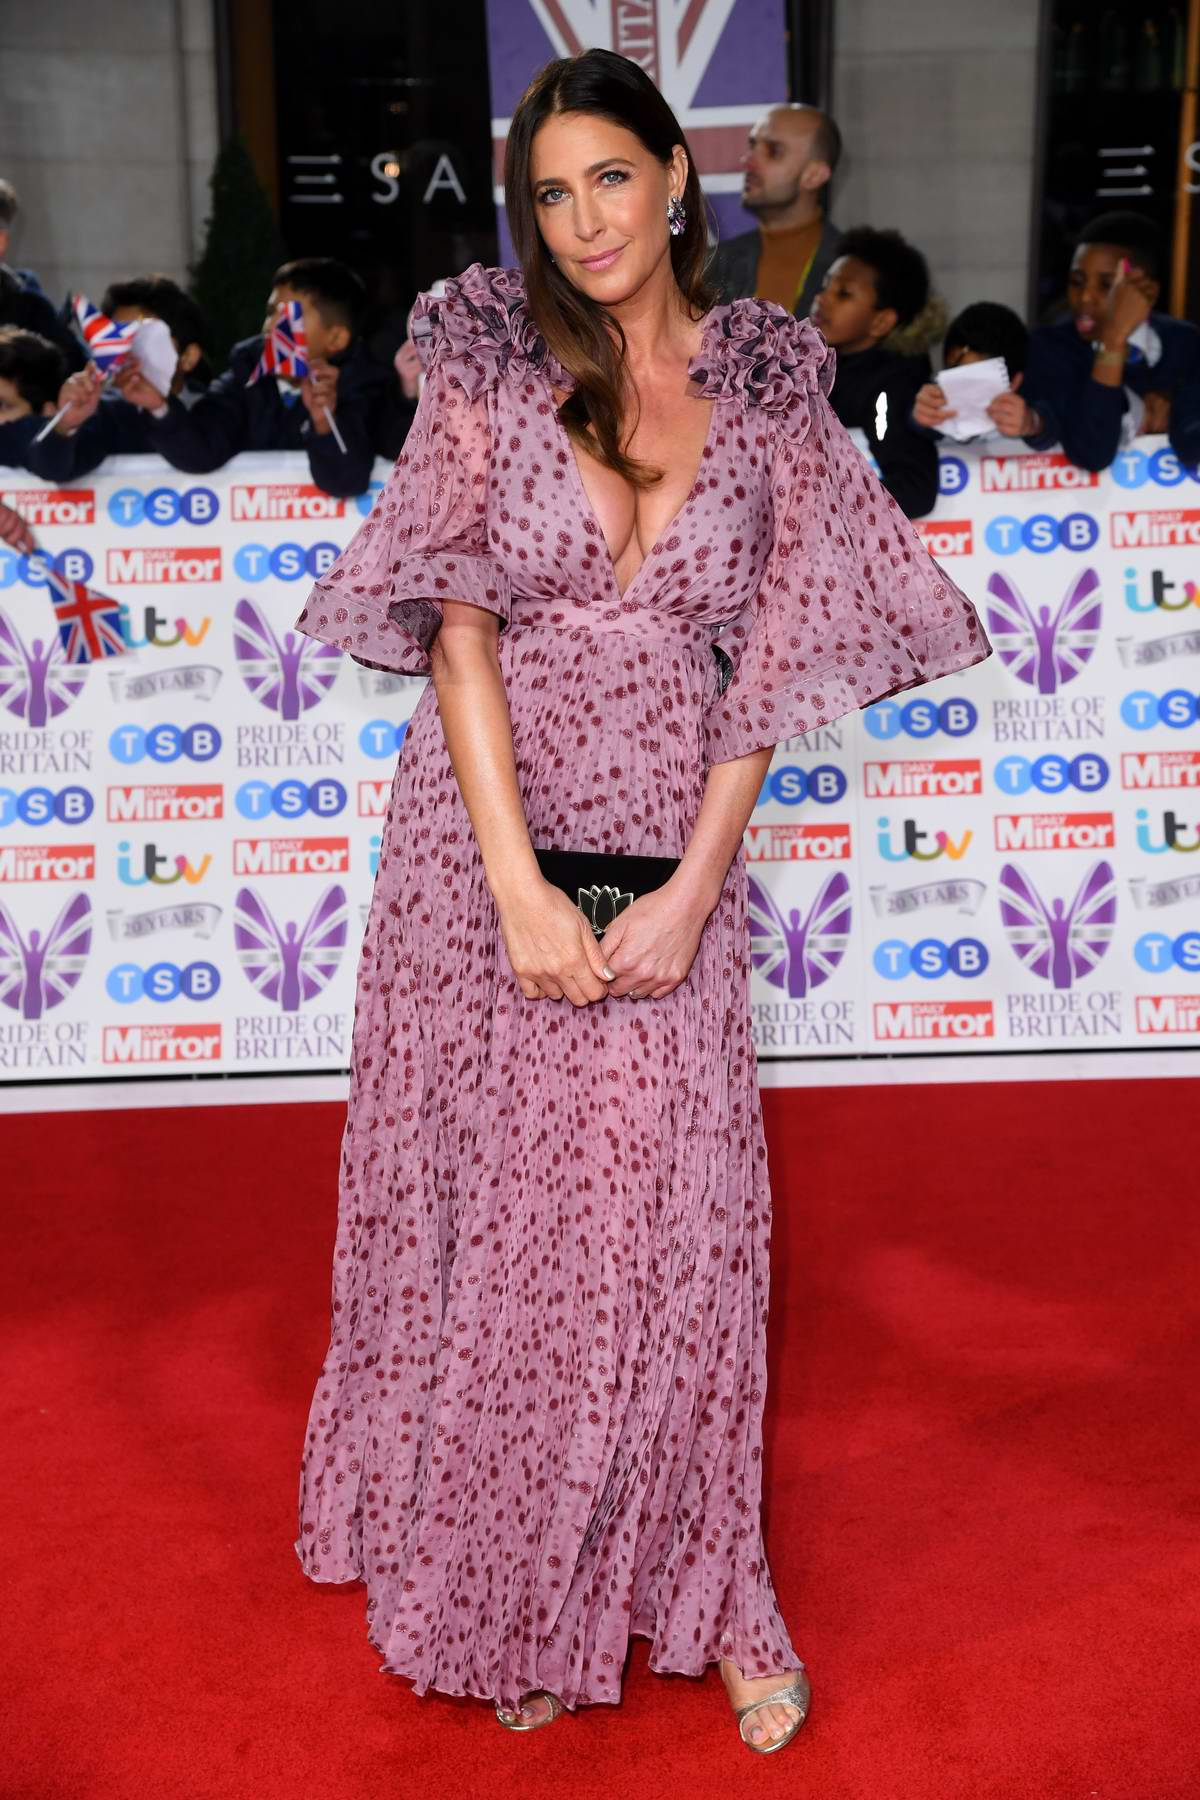 Lisa Snowdon attends the Pride of Britain Awards 2019 at Grosvenor House in London, UK